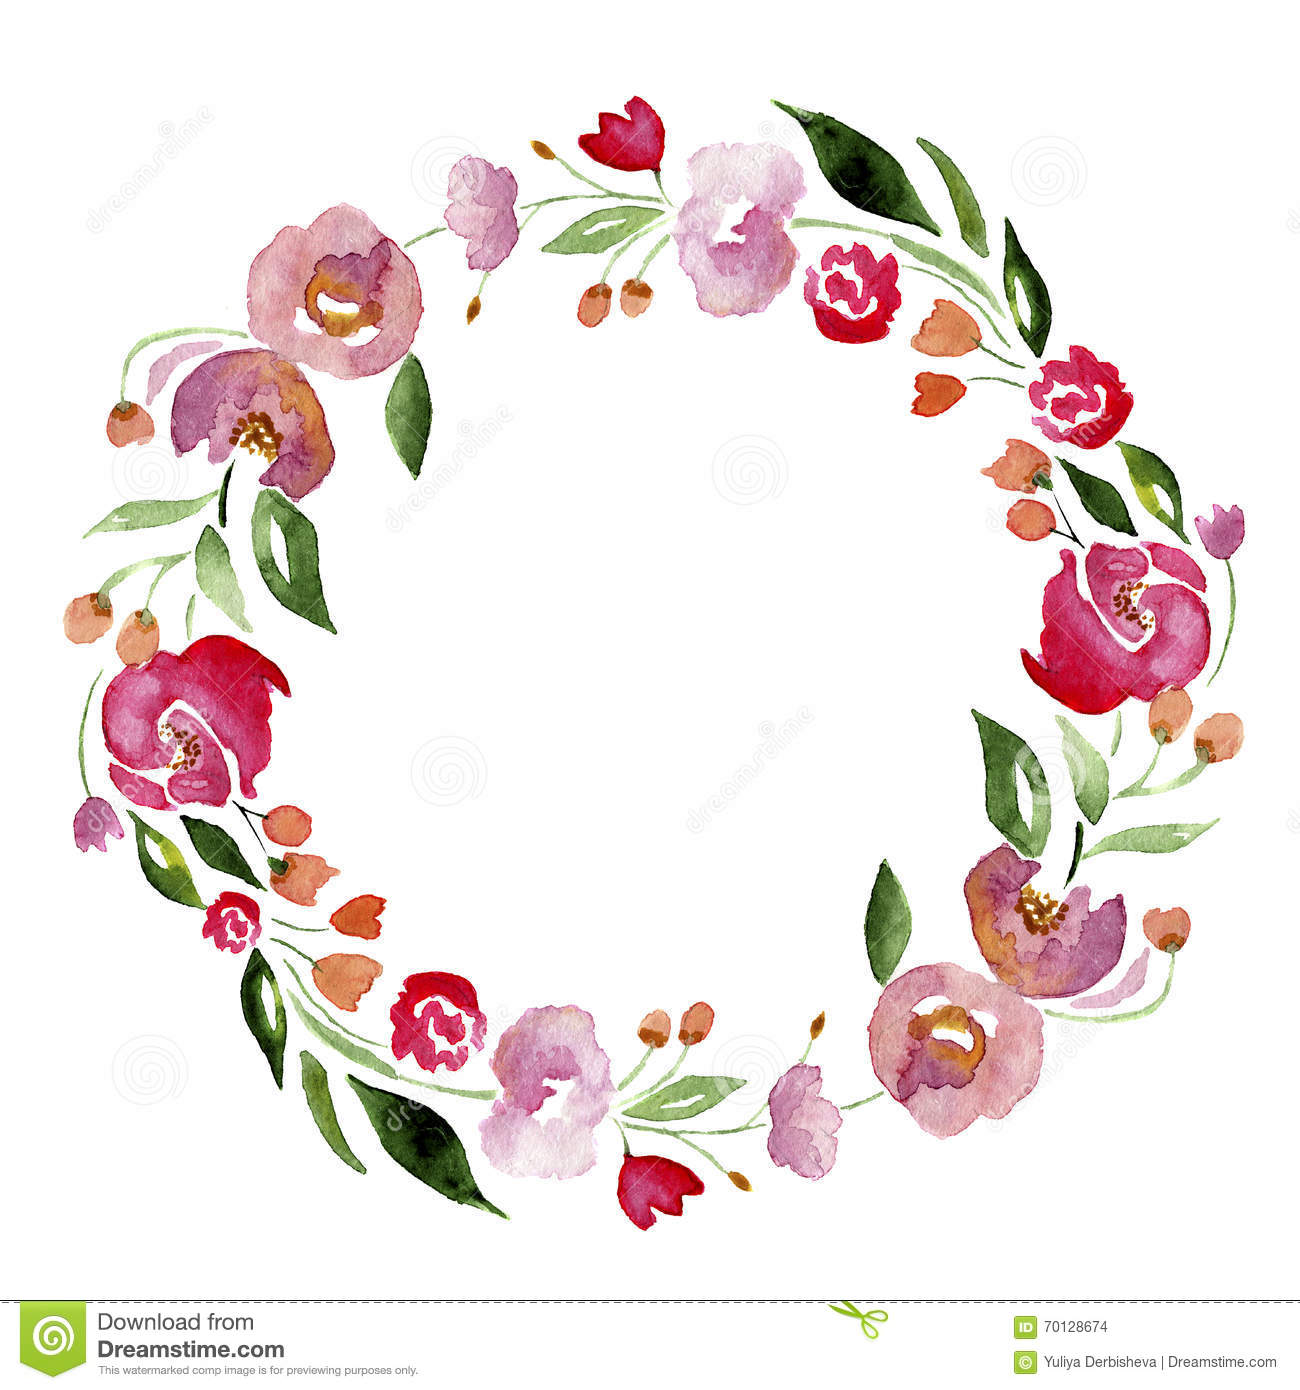 Watercolor Hand Drawn Flower Wreath For Design Artistic